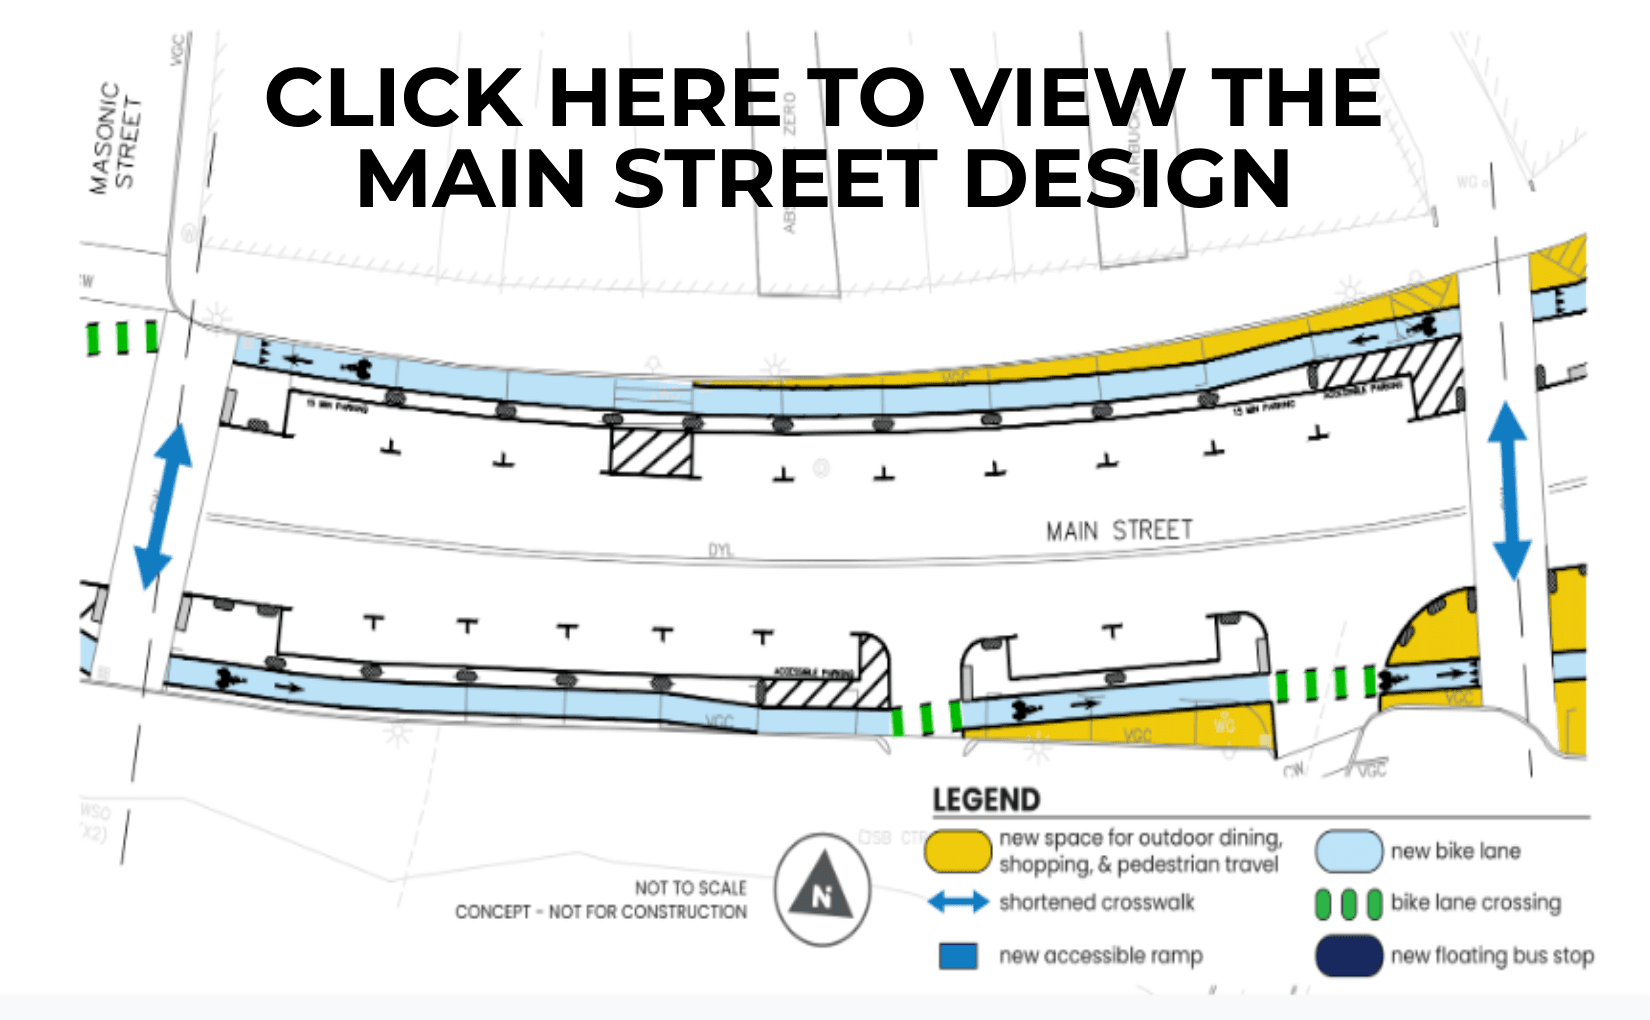 Image of Main Street Design Plan